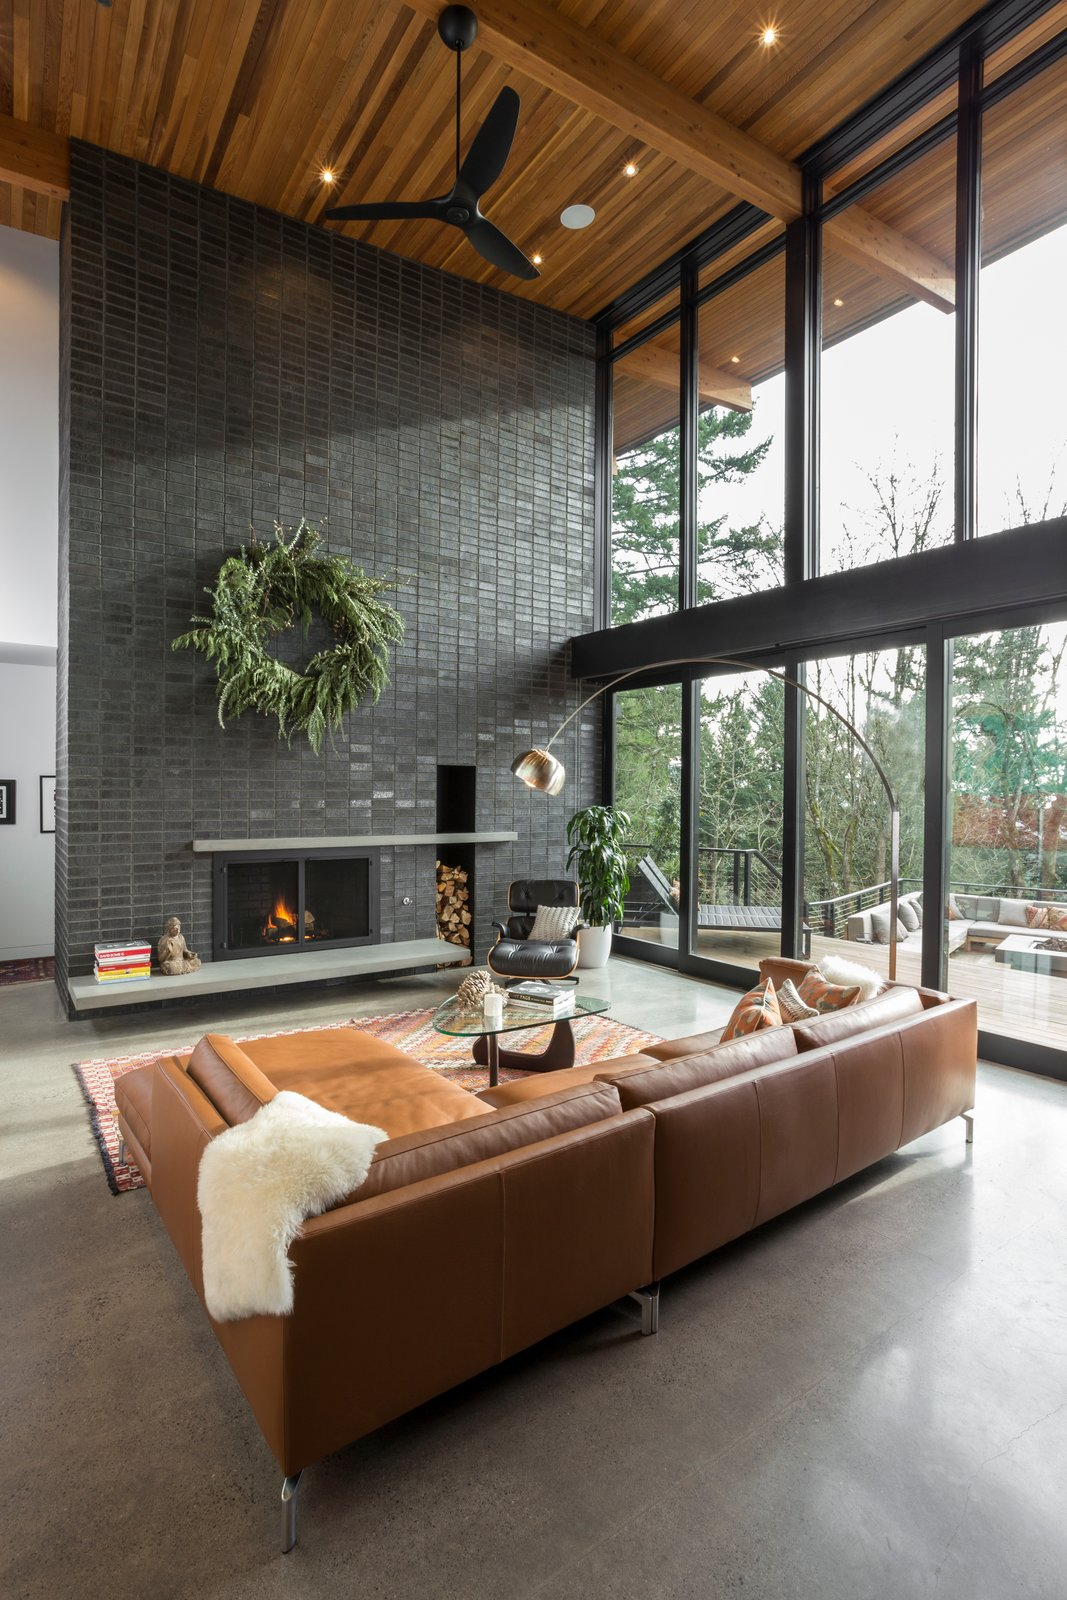 Living Room, Accent Lighting, Concrete Floor, Standard Layout Fireplace, Ceiling Lighting, Sectional, Chair, Floor Lighting, Recessed Lighting, Wood Burning Fireplace, and Coffee Tables Living room  The Greenhills House